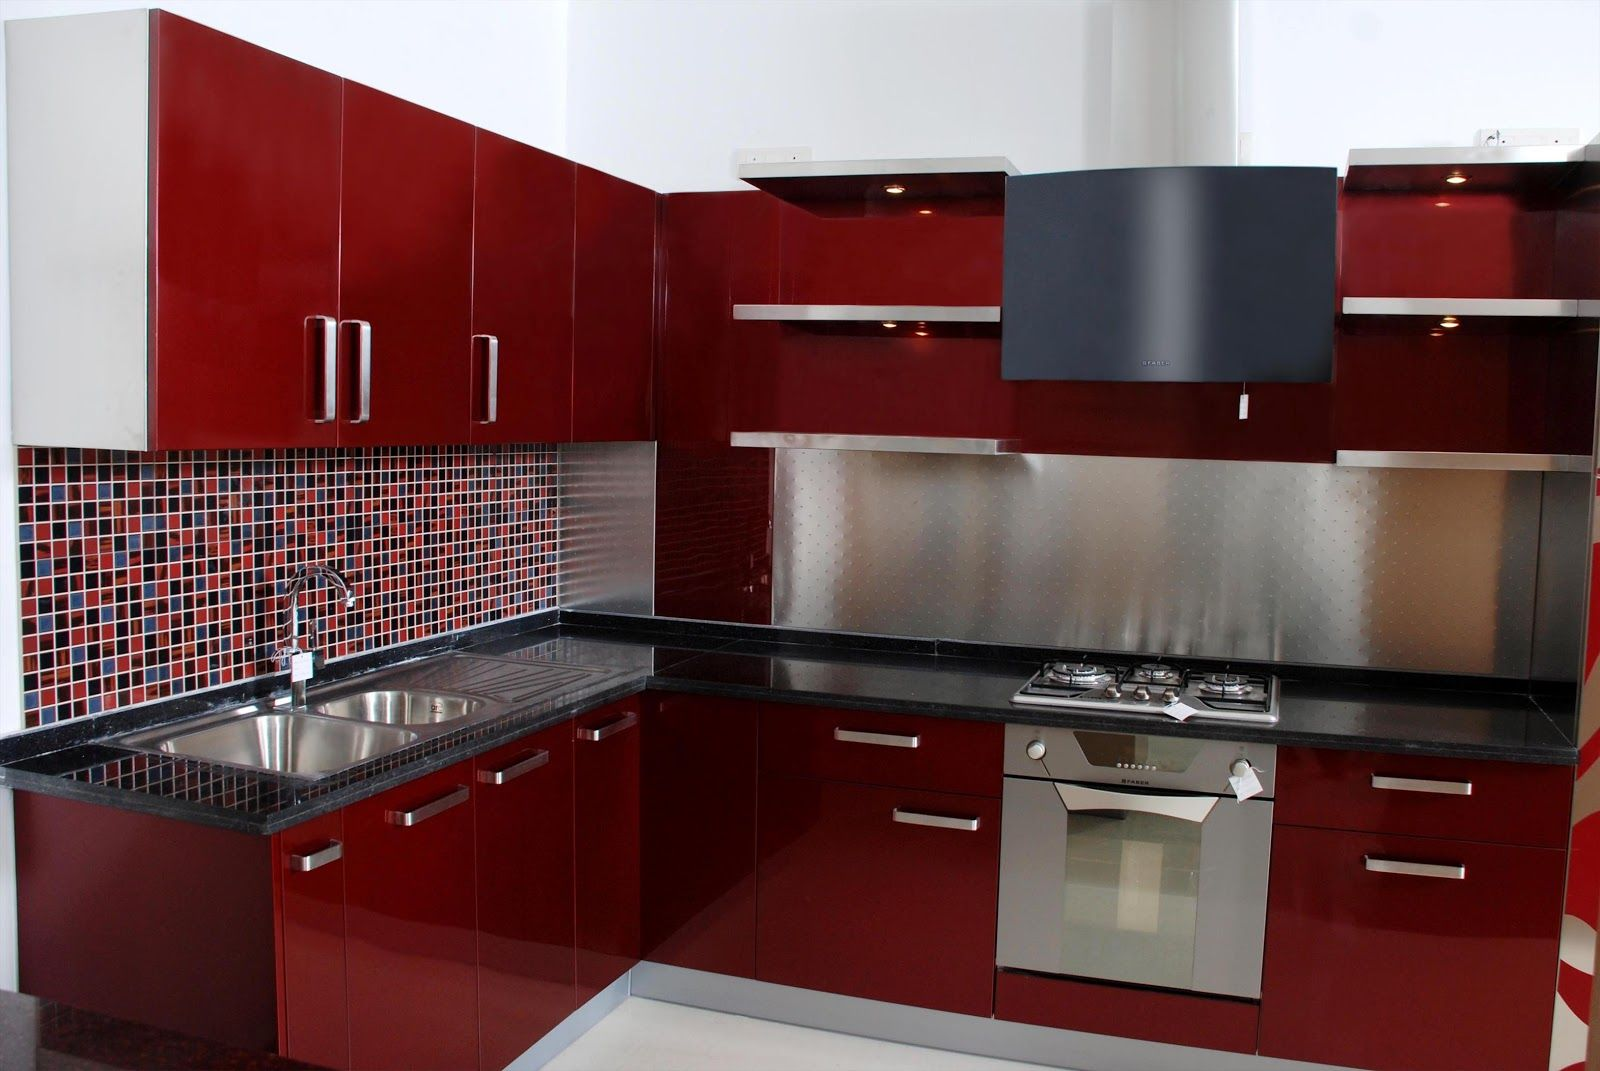 Parallel kitchen design india google search kitchen for Kitchen furniture design ideas